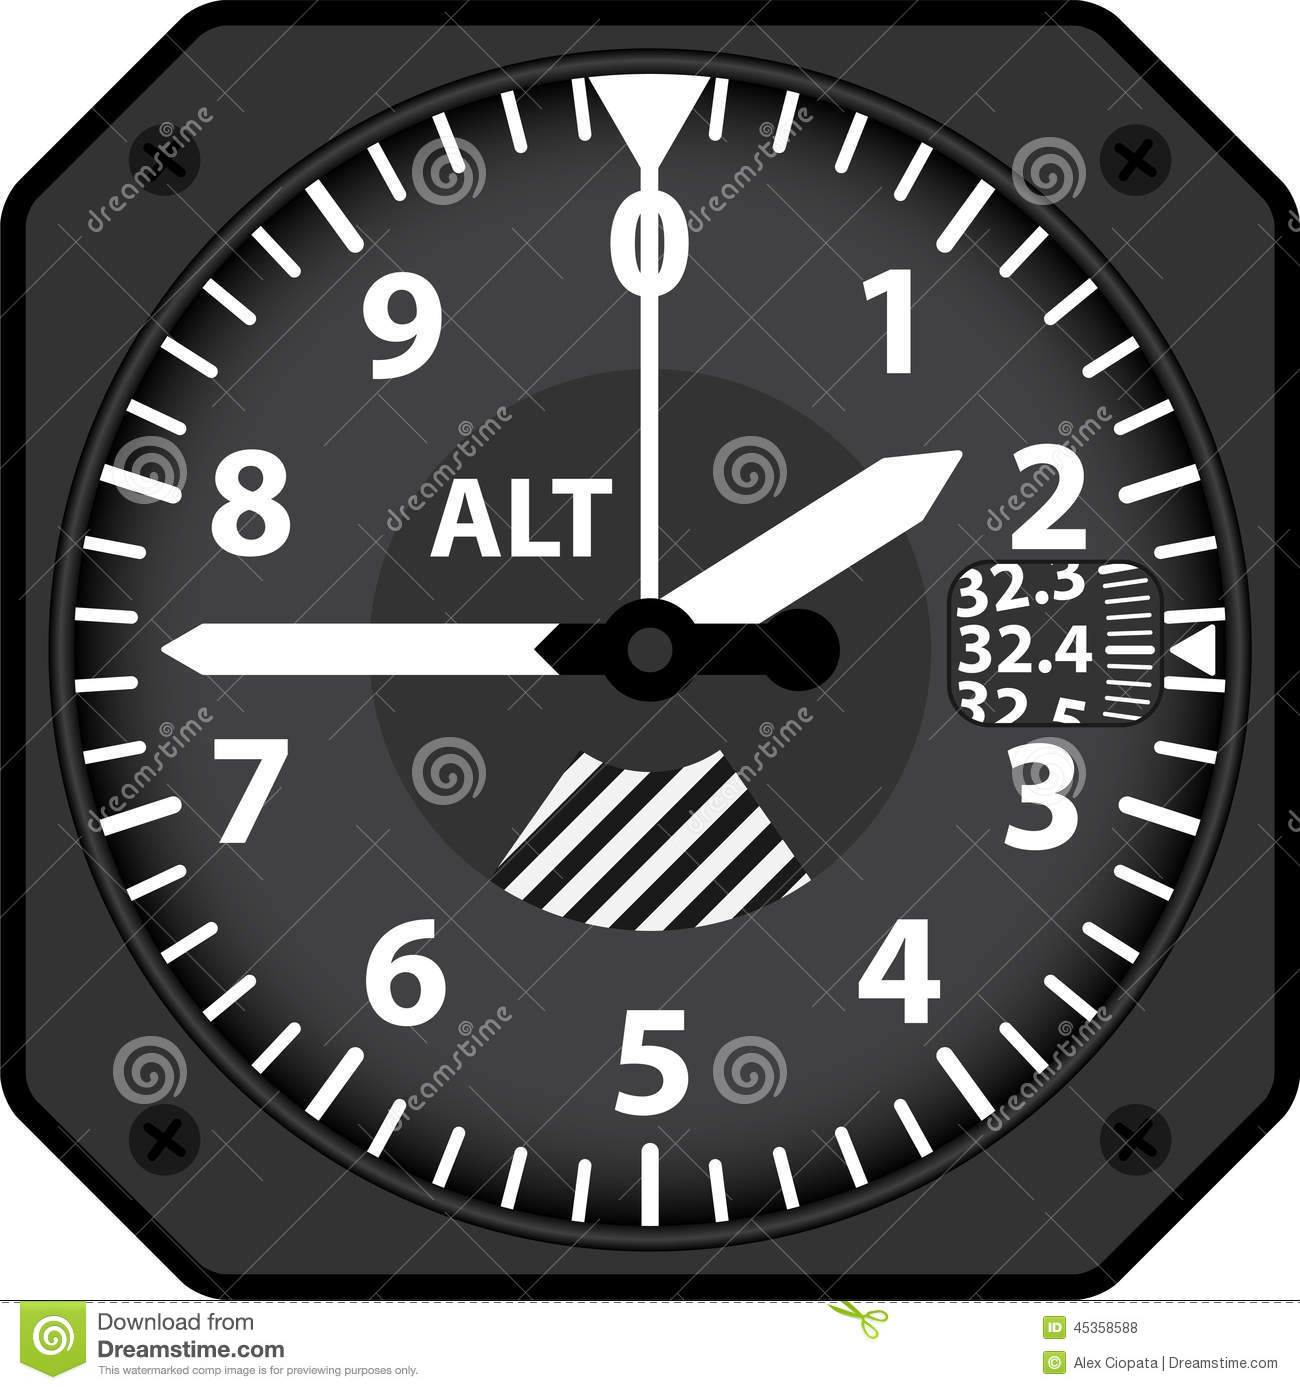 Aircraft Altimeter Stock Vector - Image: 45358588